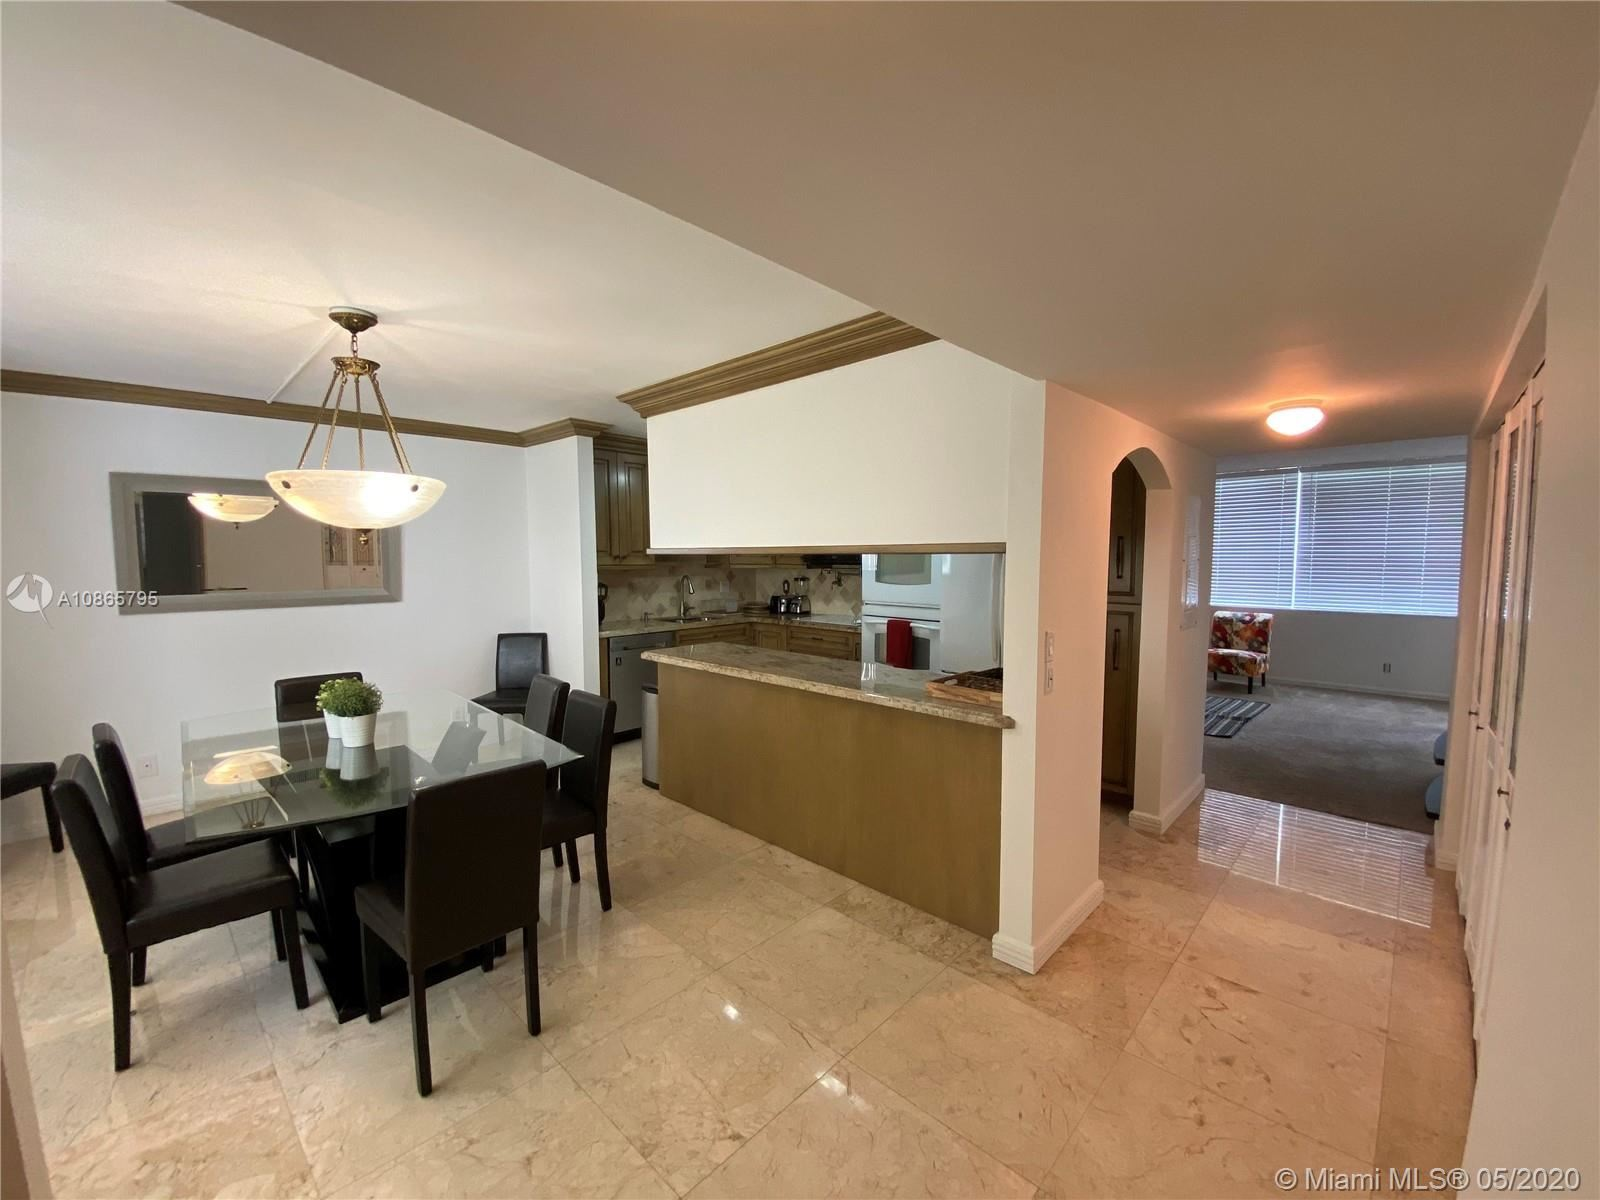 20441 NE 30th Ave #314-9, Aventura, FL 33180 - #: A10865795